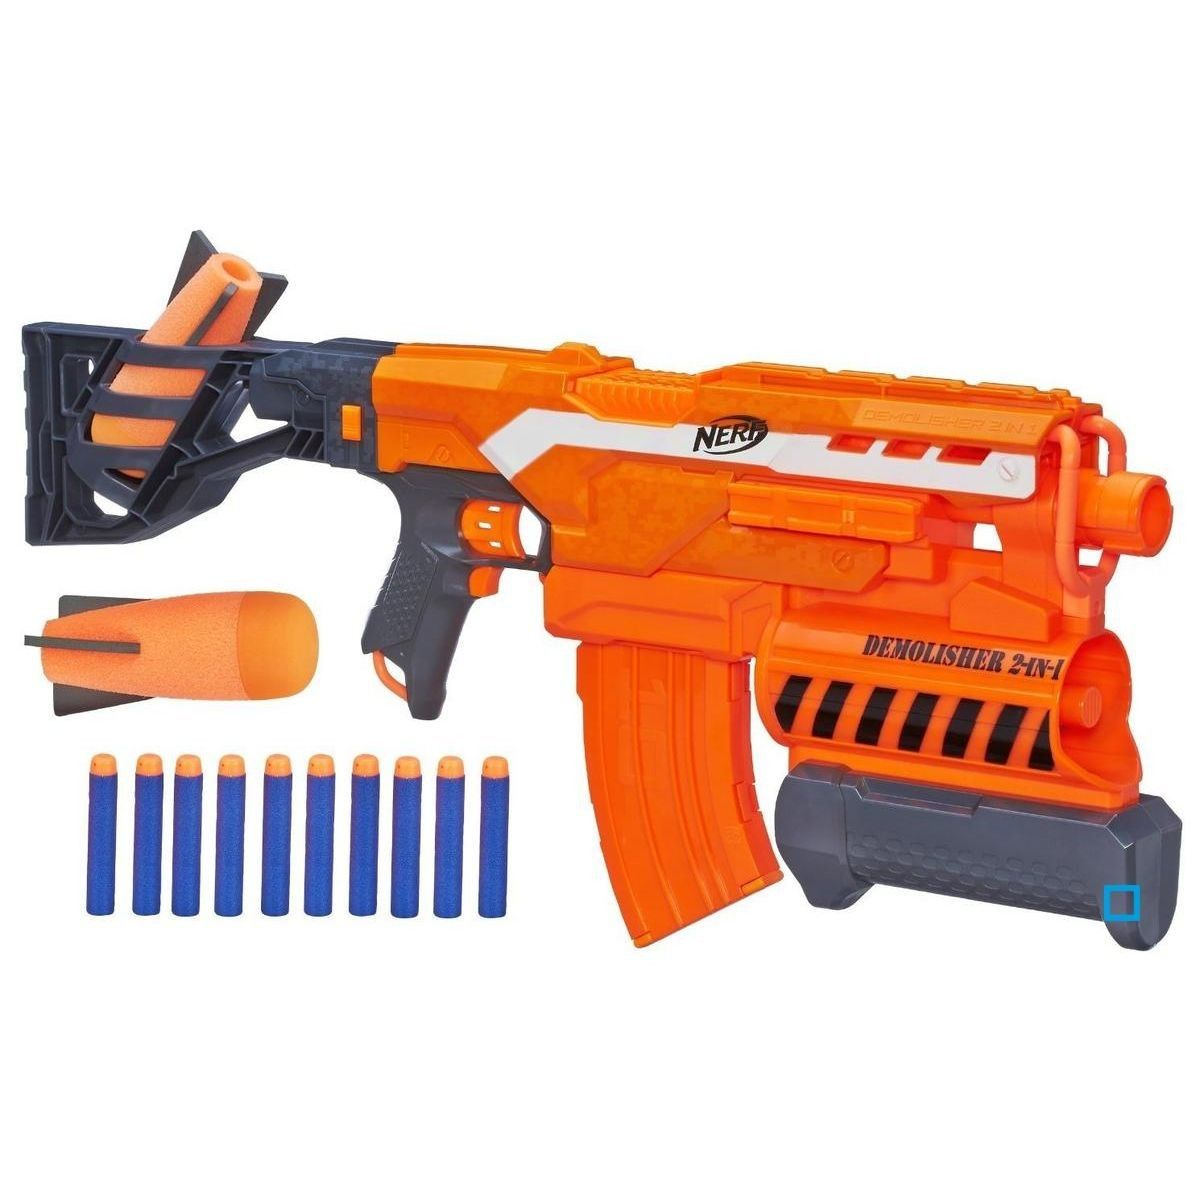 Pistolet Elite 2 À Fléchettes 1Nerf En Demolisher XdProducts Ku1cFJ3lT5